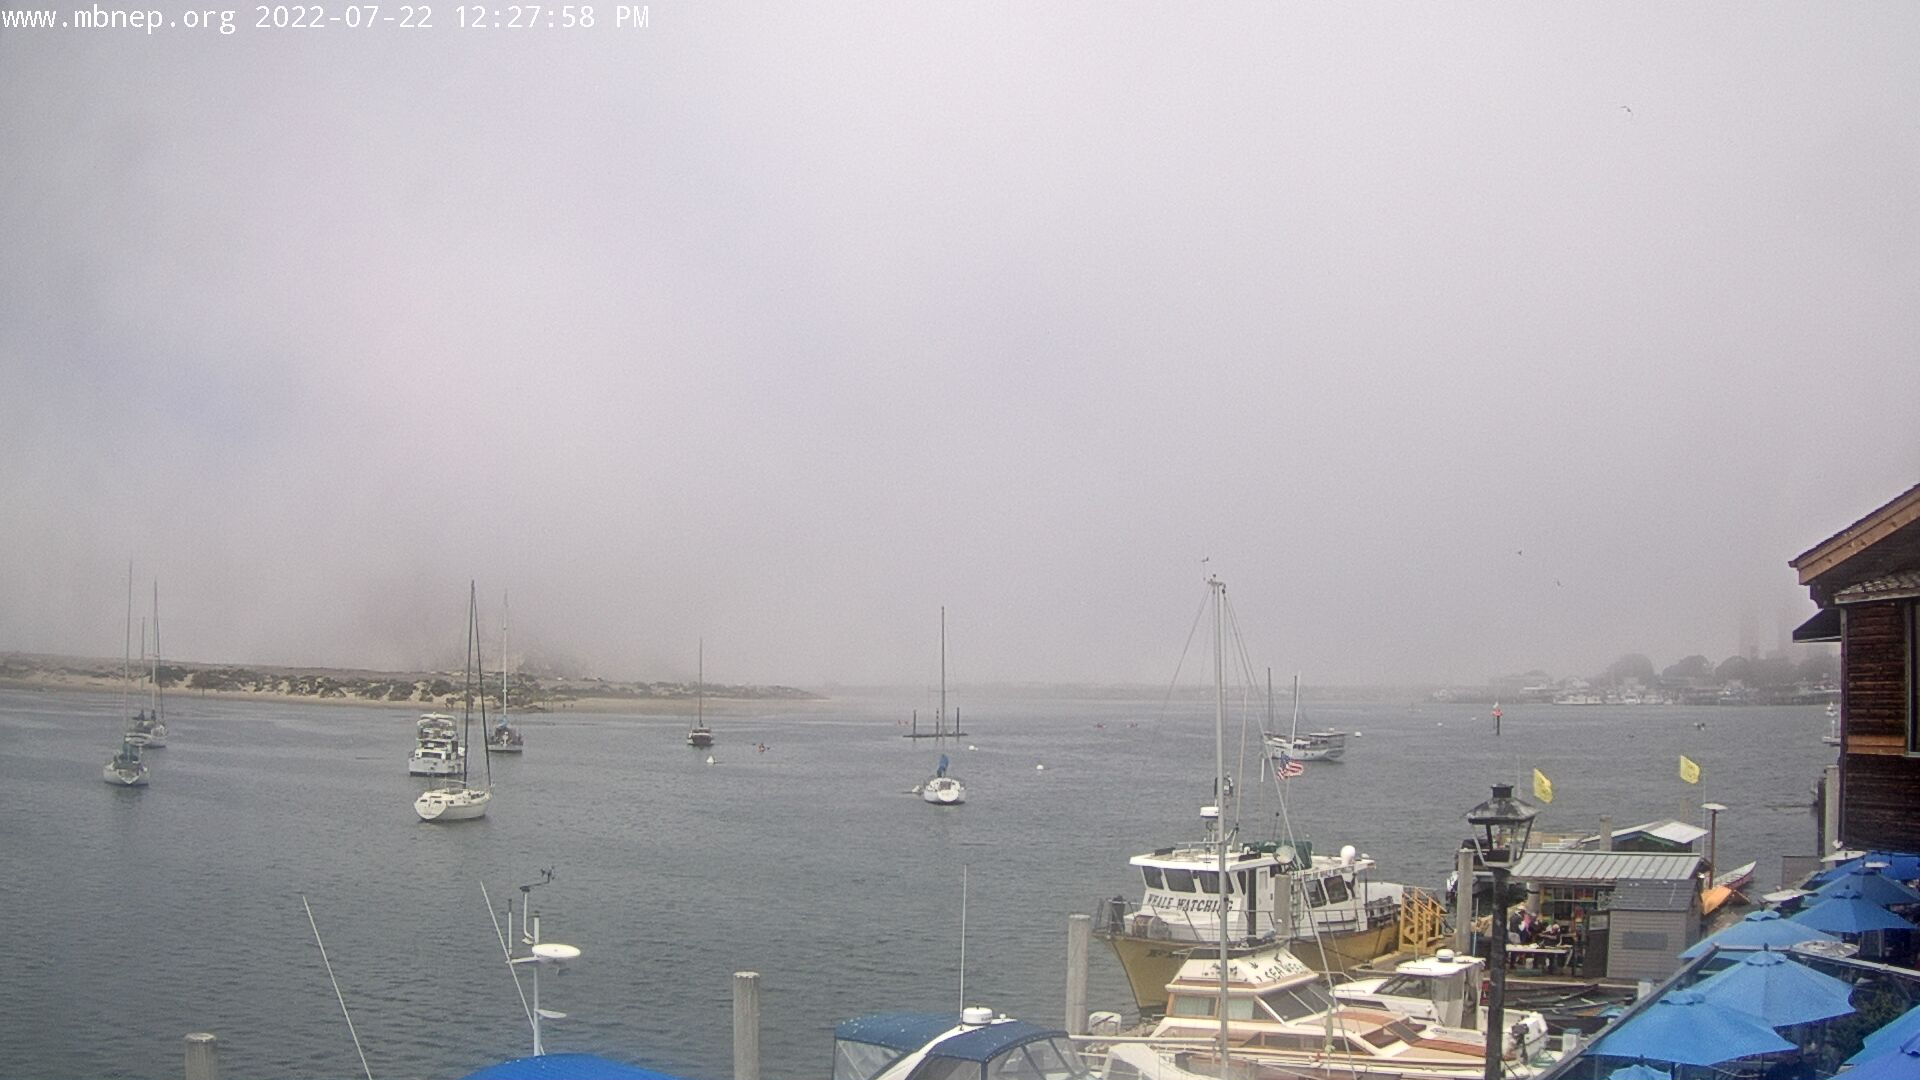 Morro Bay , California Sun. 12:30